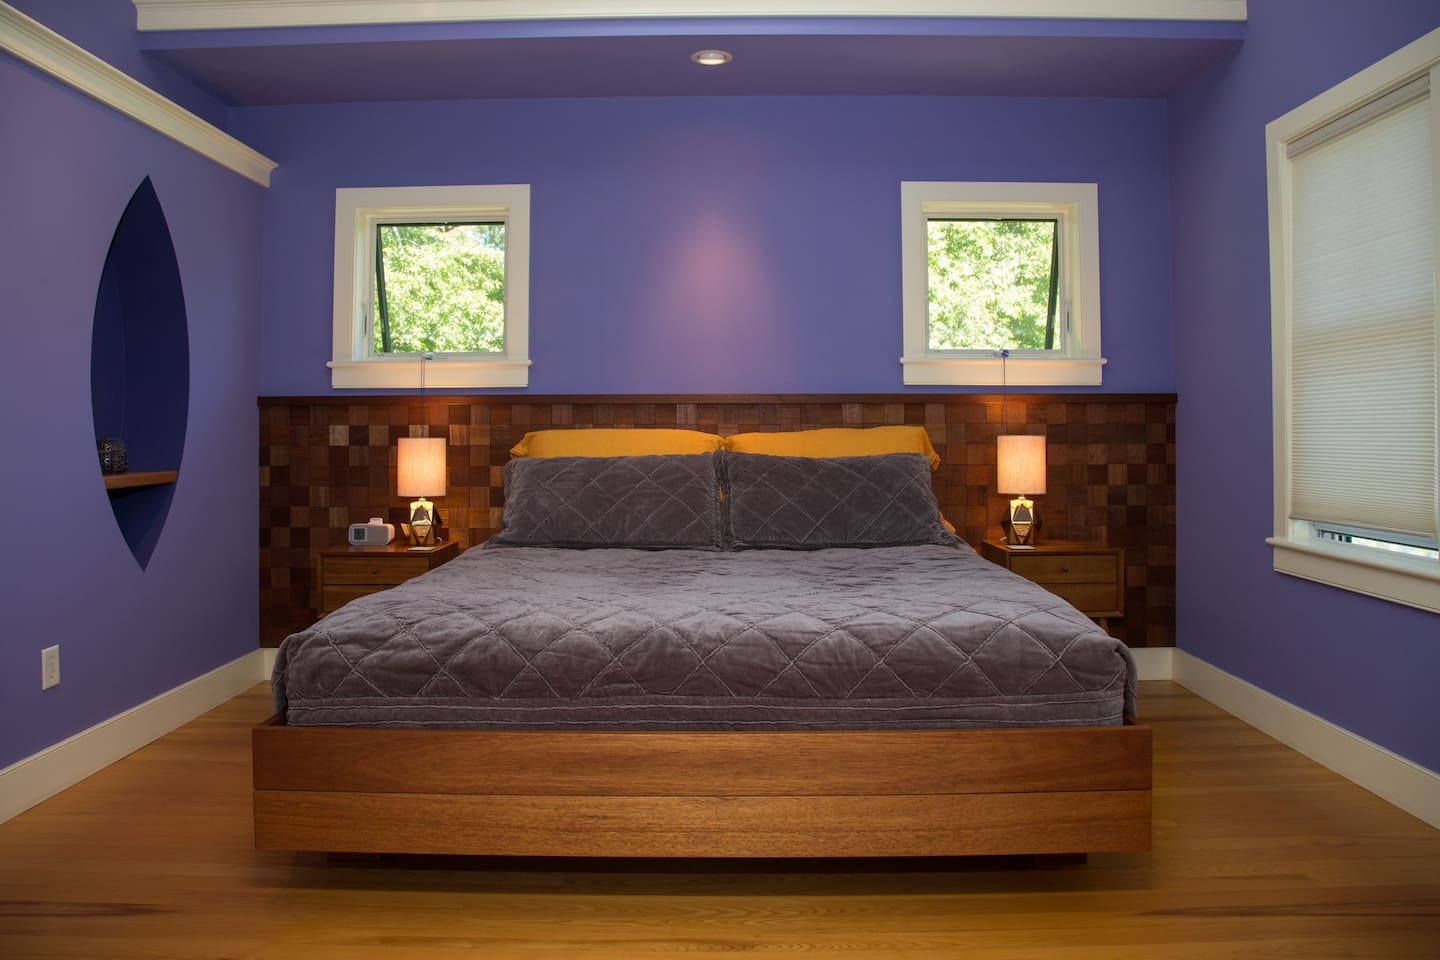 Custom-made reclaimed mahogany king-size bed & headboard with luxurious bamboo sheets. Cathedral ceiling with skylight.